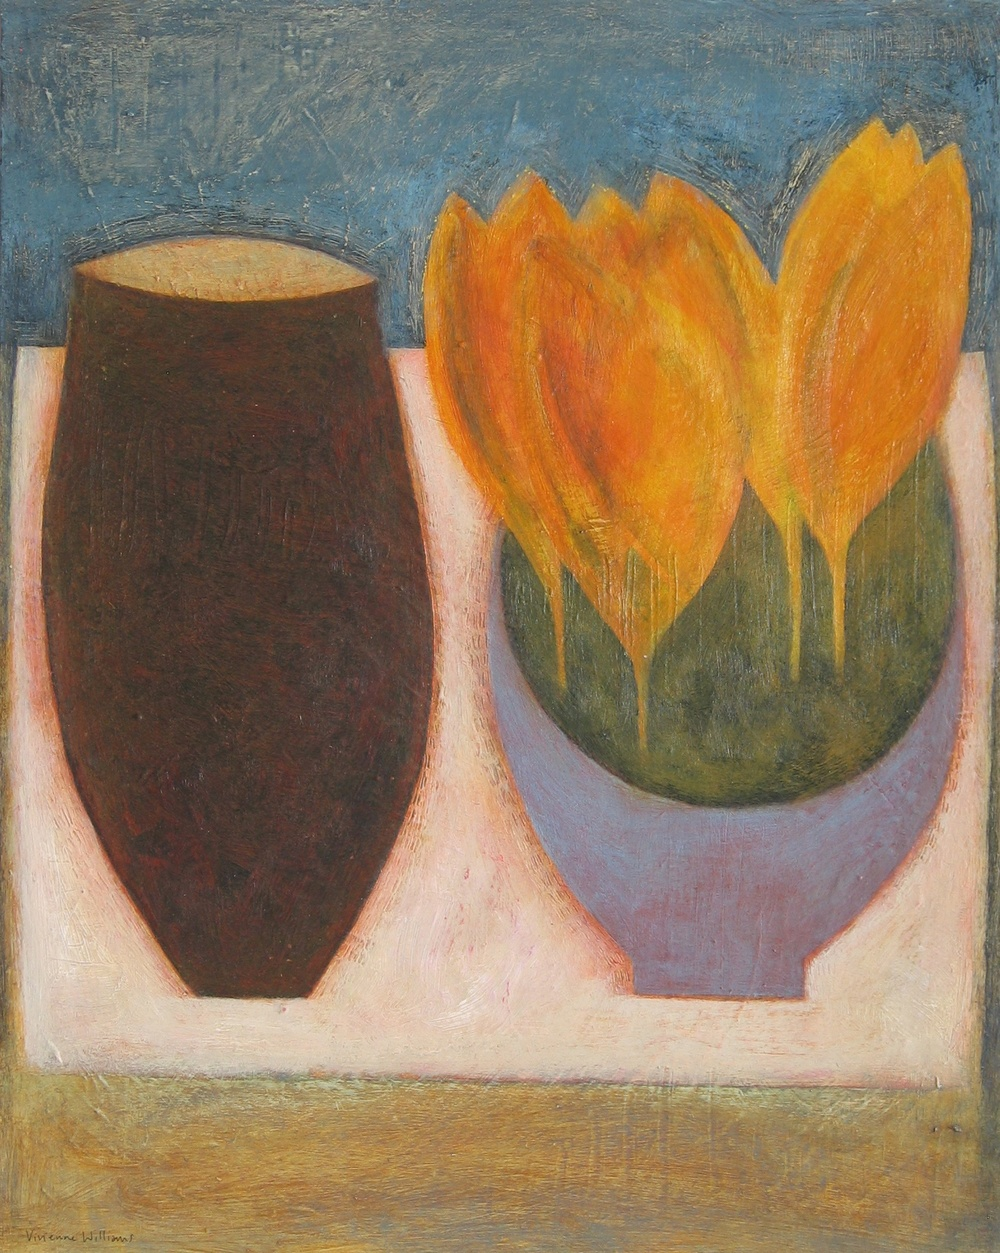 Jar with Yellow Crocus, 51cm x 41cm, 2012